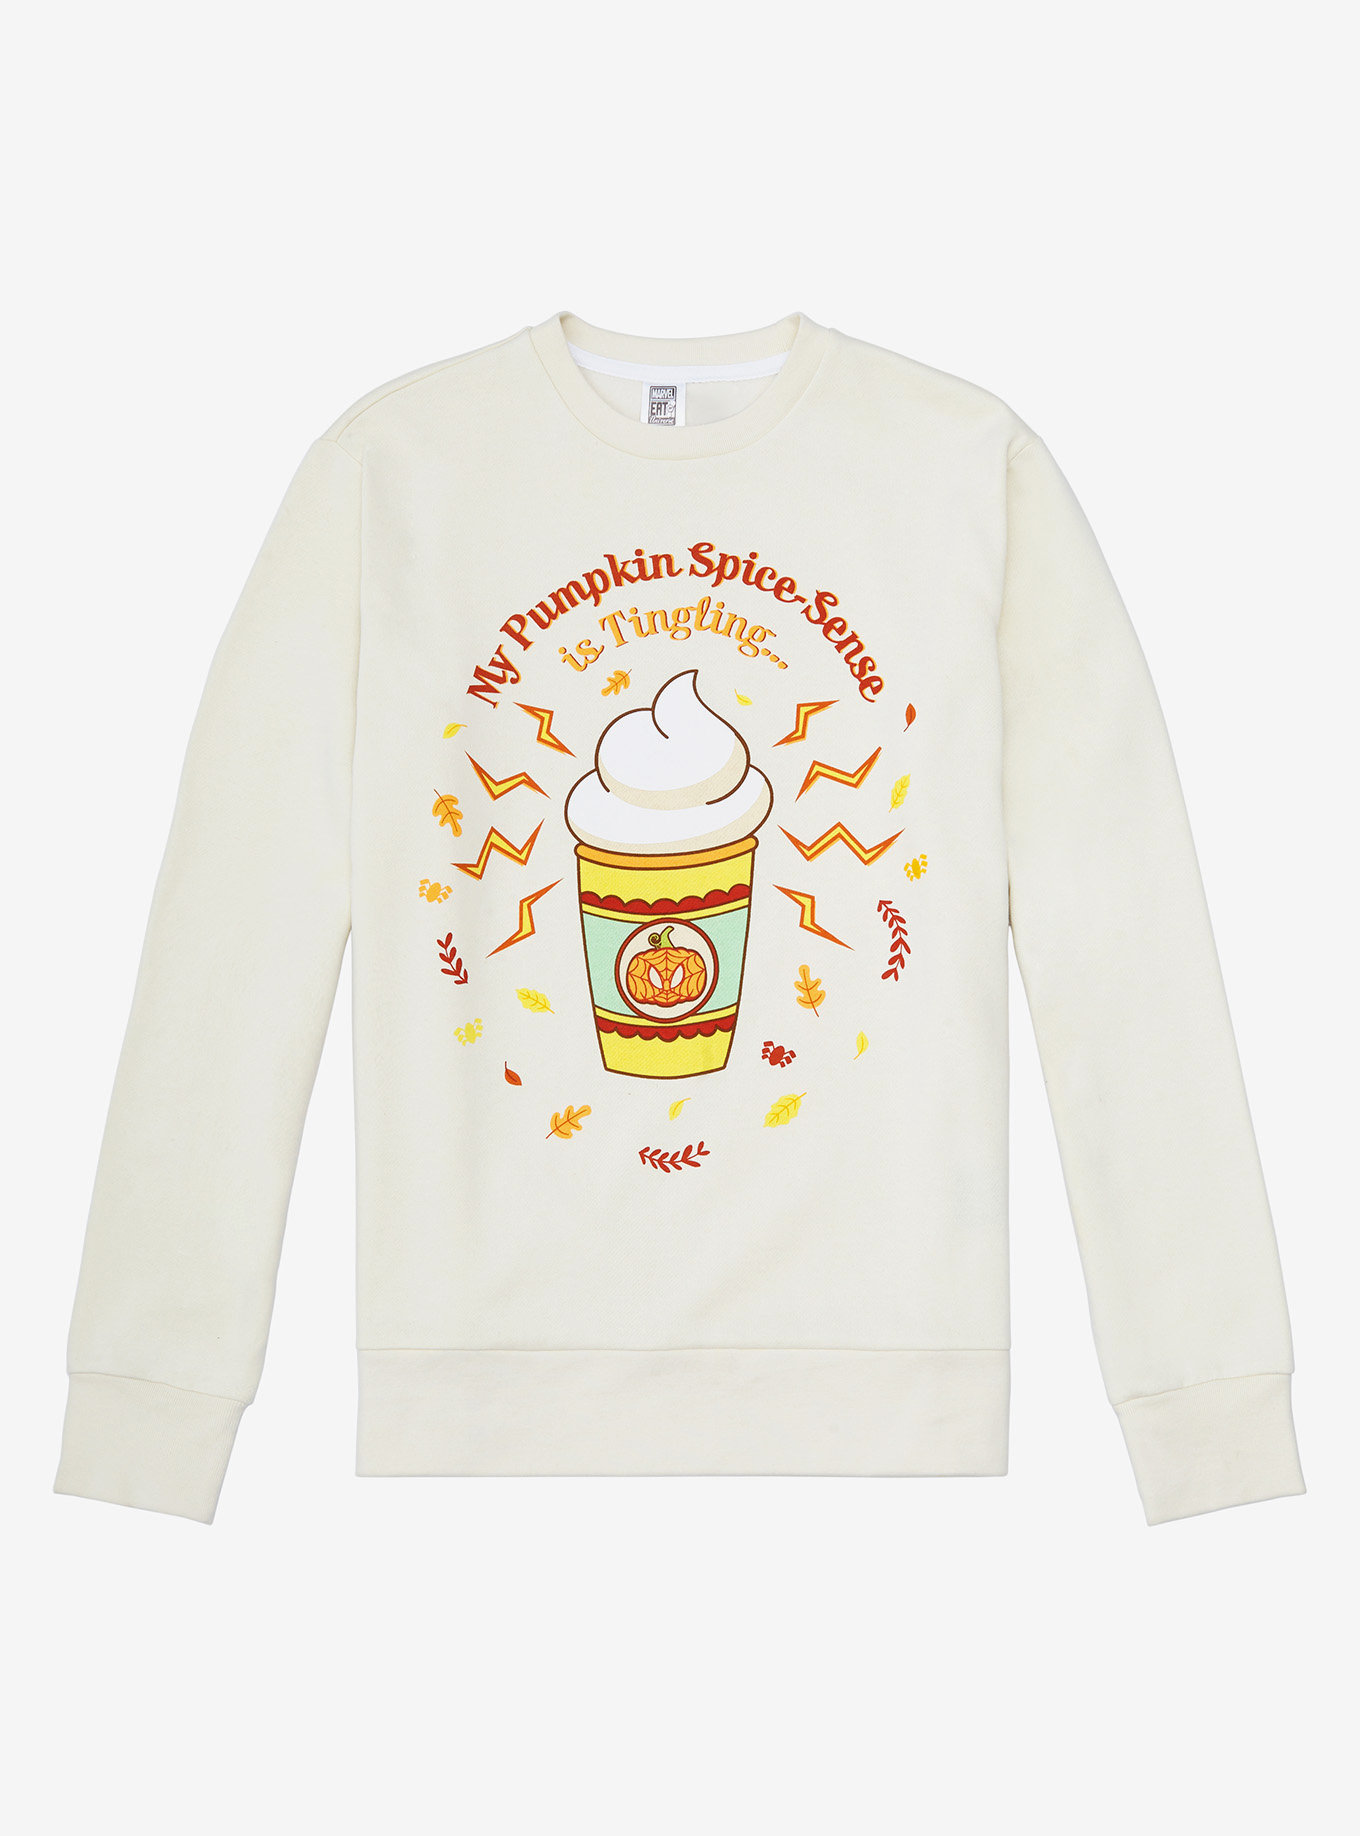 Marvel Spider-Man Pumpkin Spice-Sense Crewneck a BoxLunch Exclusive